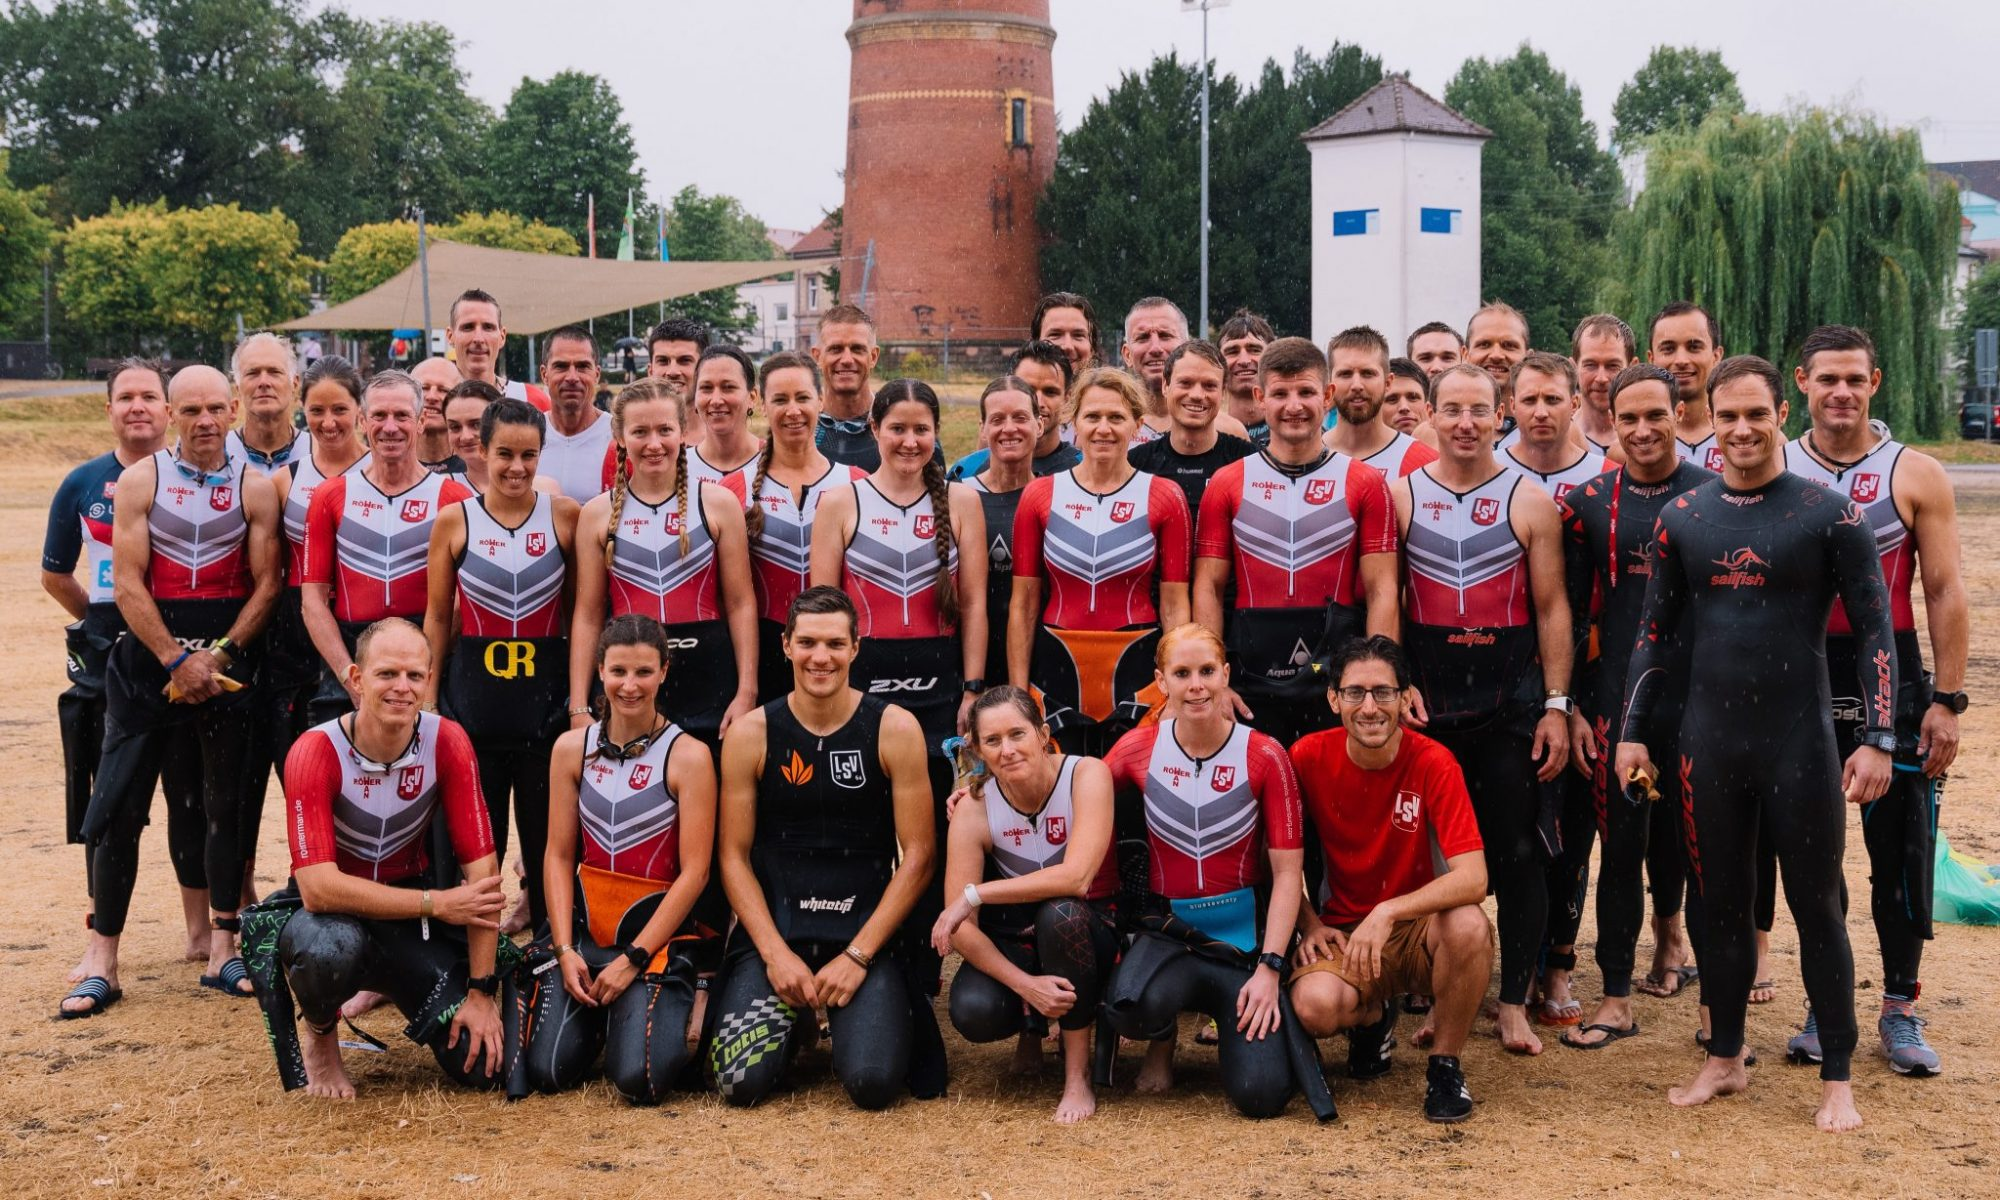 LSV Ladenburg Triathlon